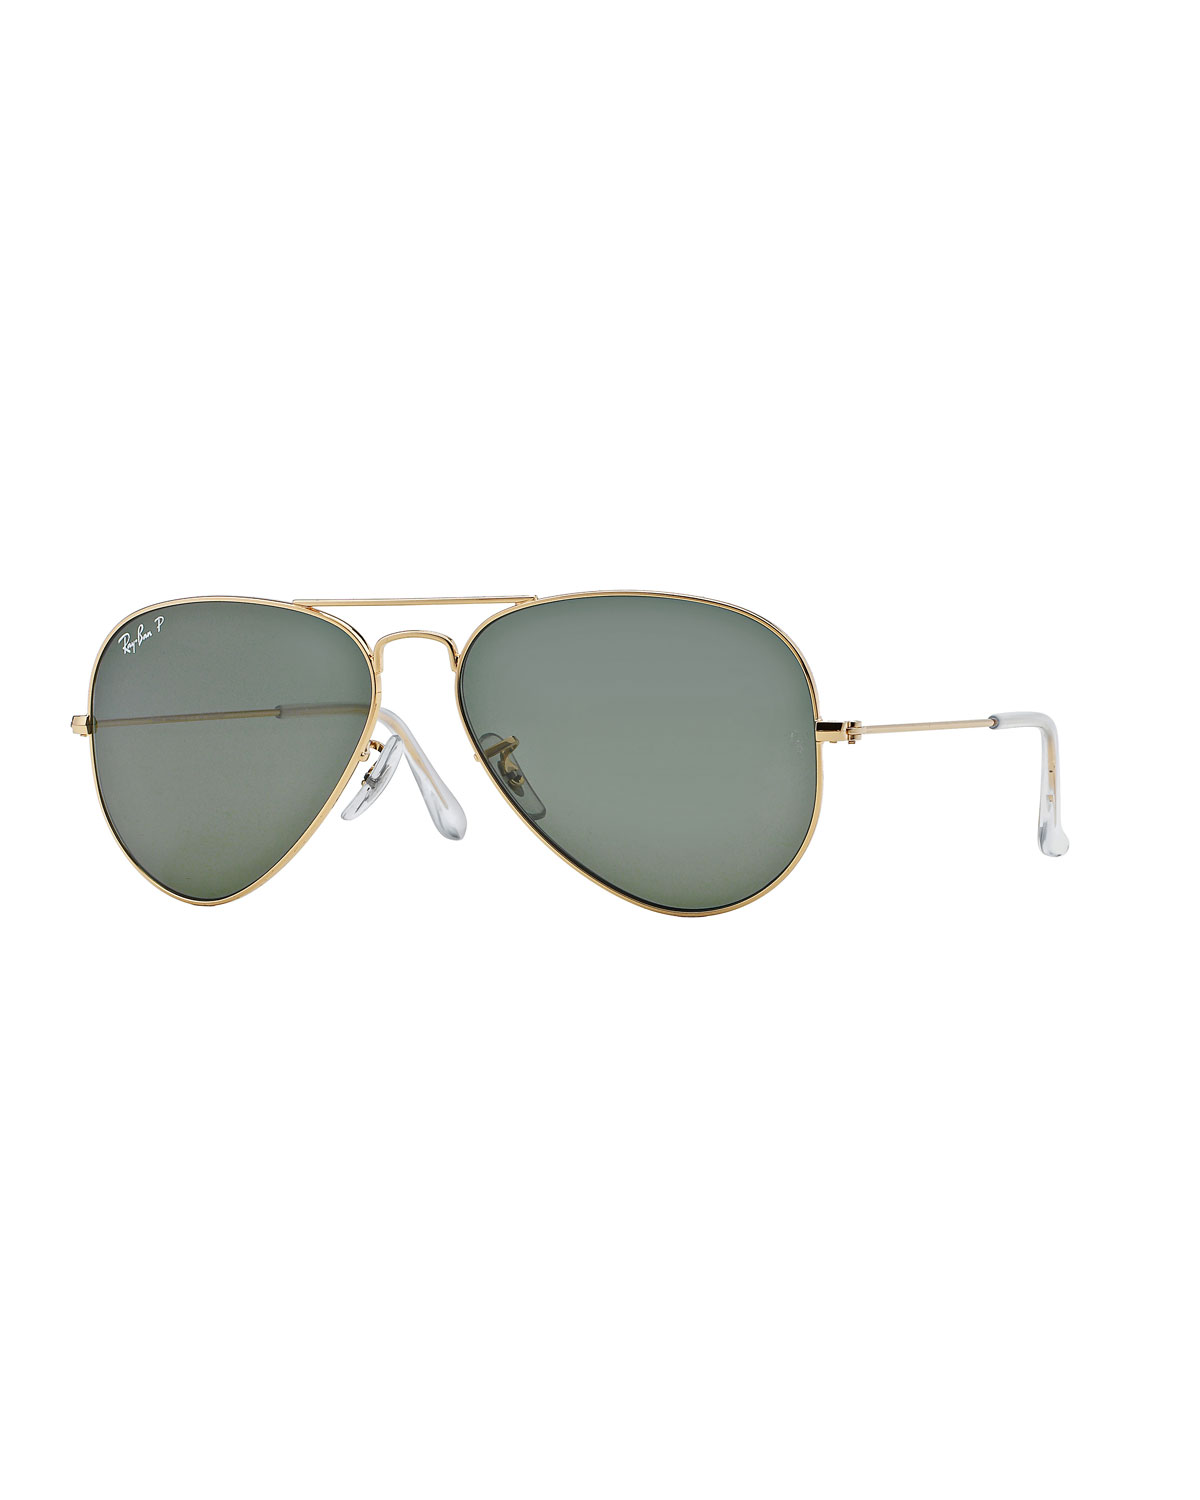 e1ed483d25 Ray-Ban Monochromatic Polarized Metal Aviator Sunglasses